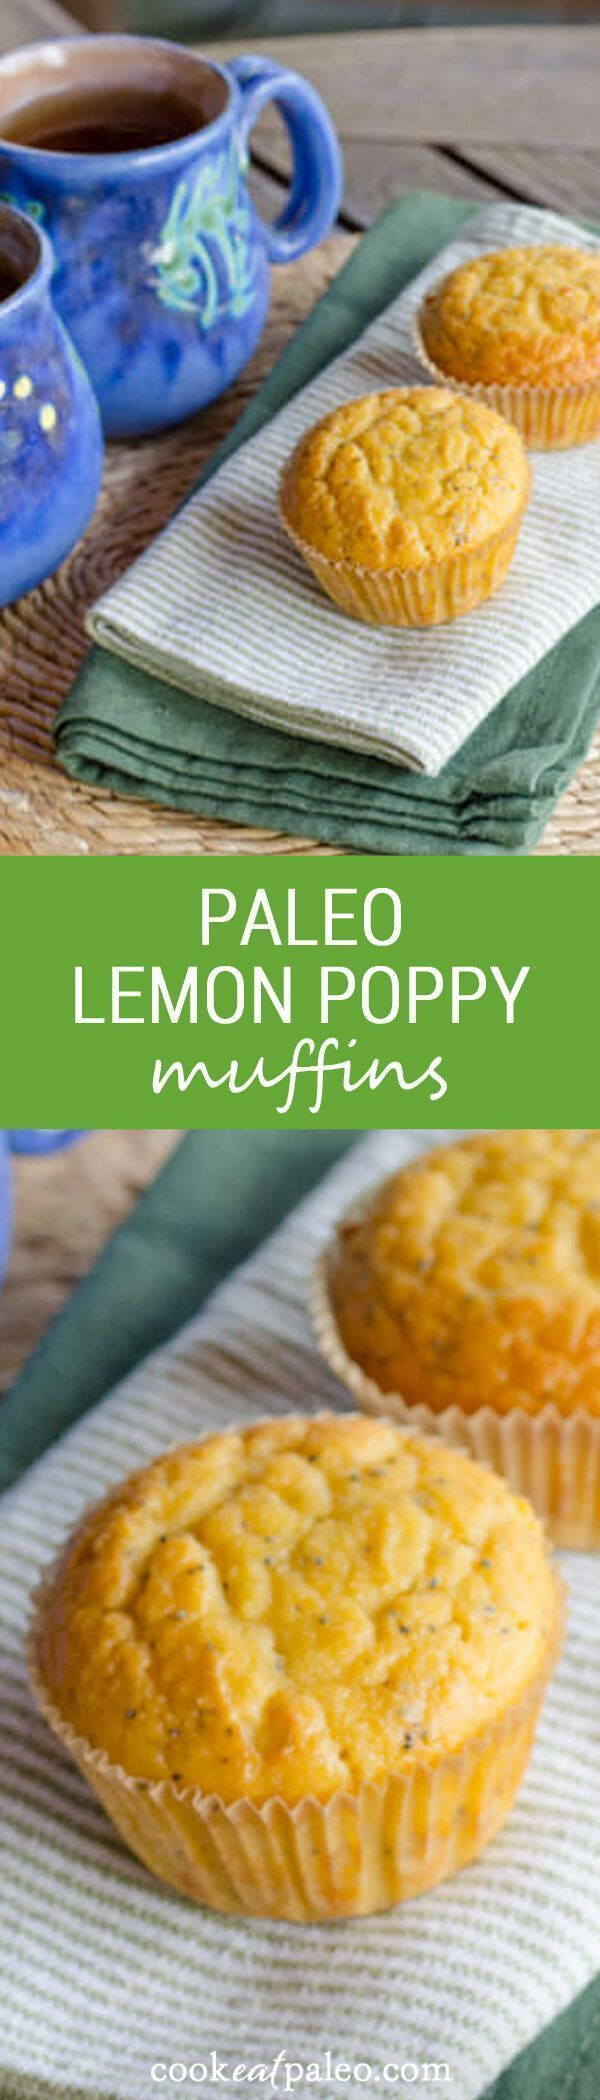 Lemon poppy paleo muffins are quick and easy gluten free recipe. Just add everything to the food processor — the batter is ready in about five minutes.